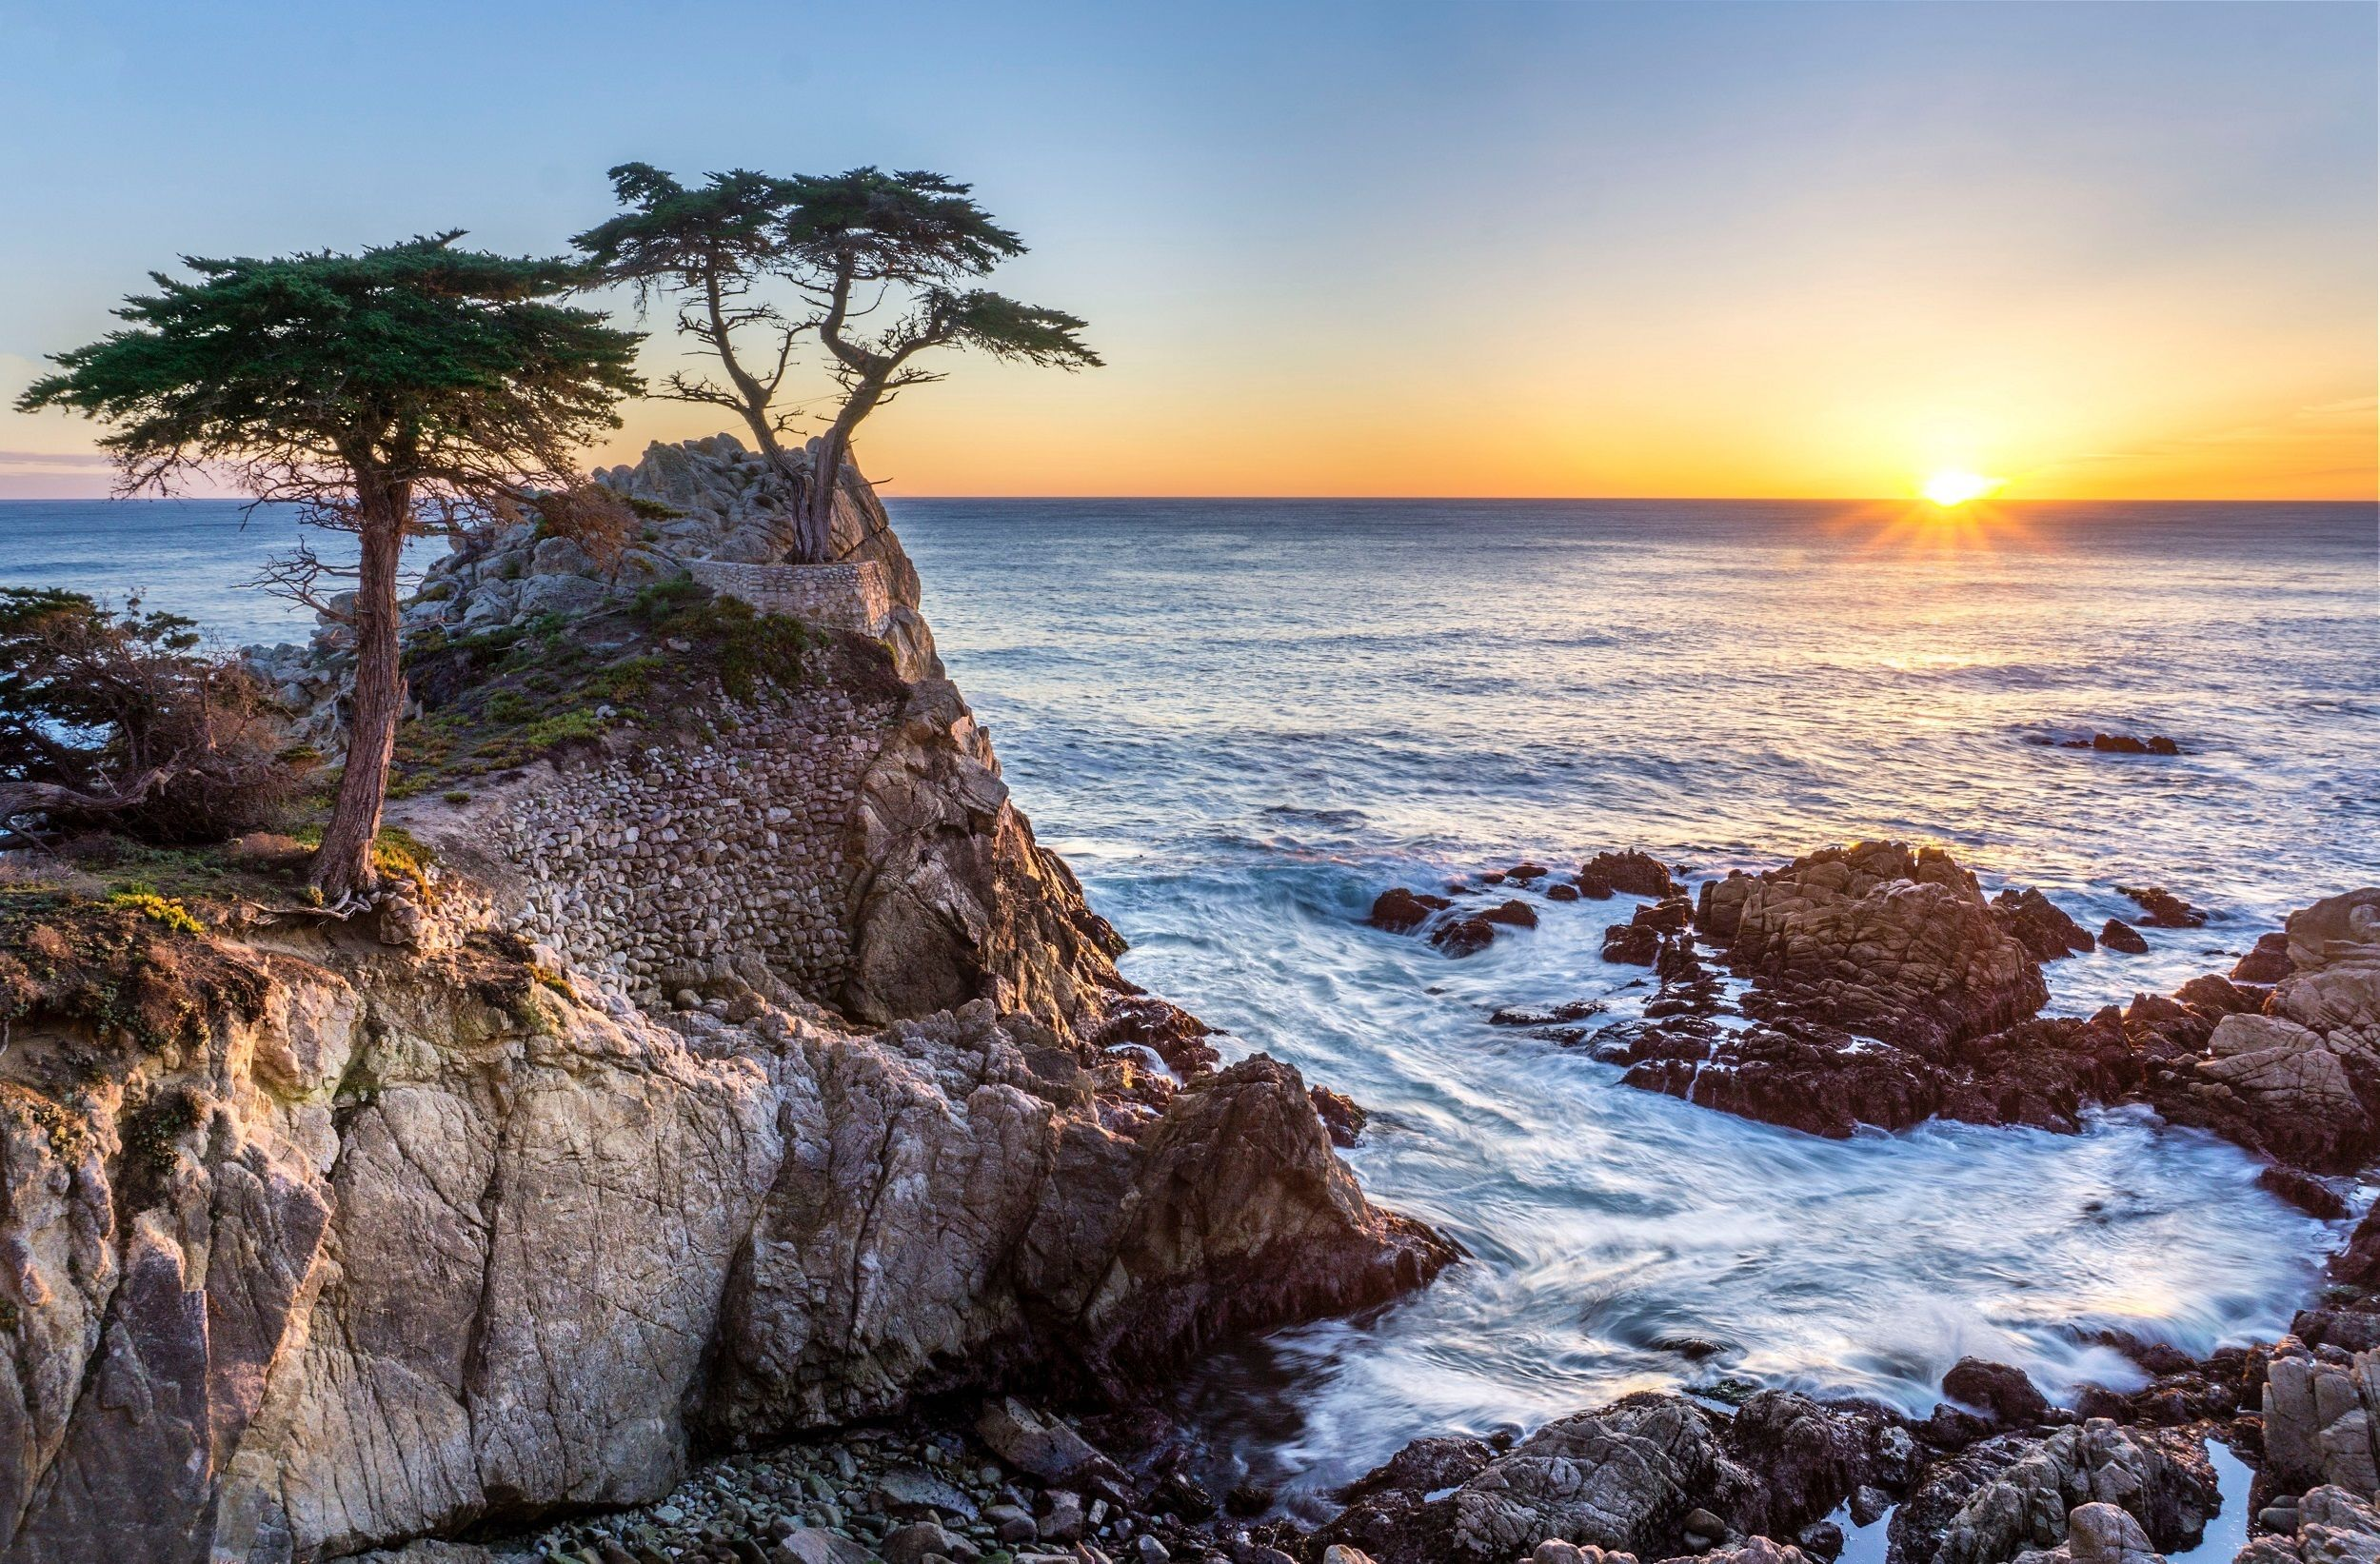 Monterey, Carmel & Pacific Coast Highway - Full Day Tour